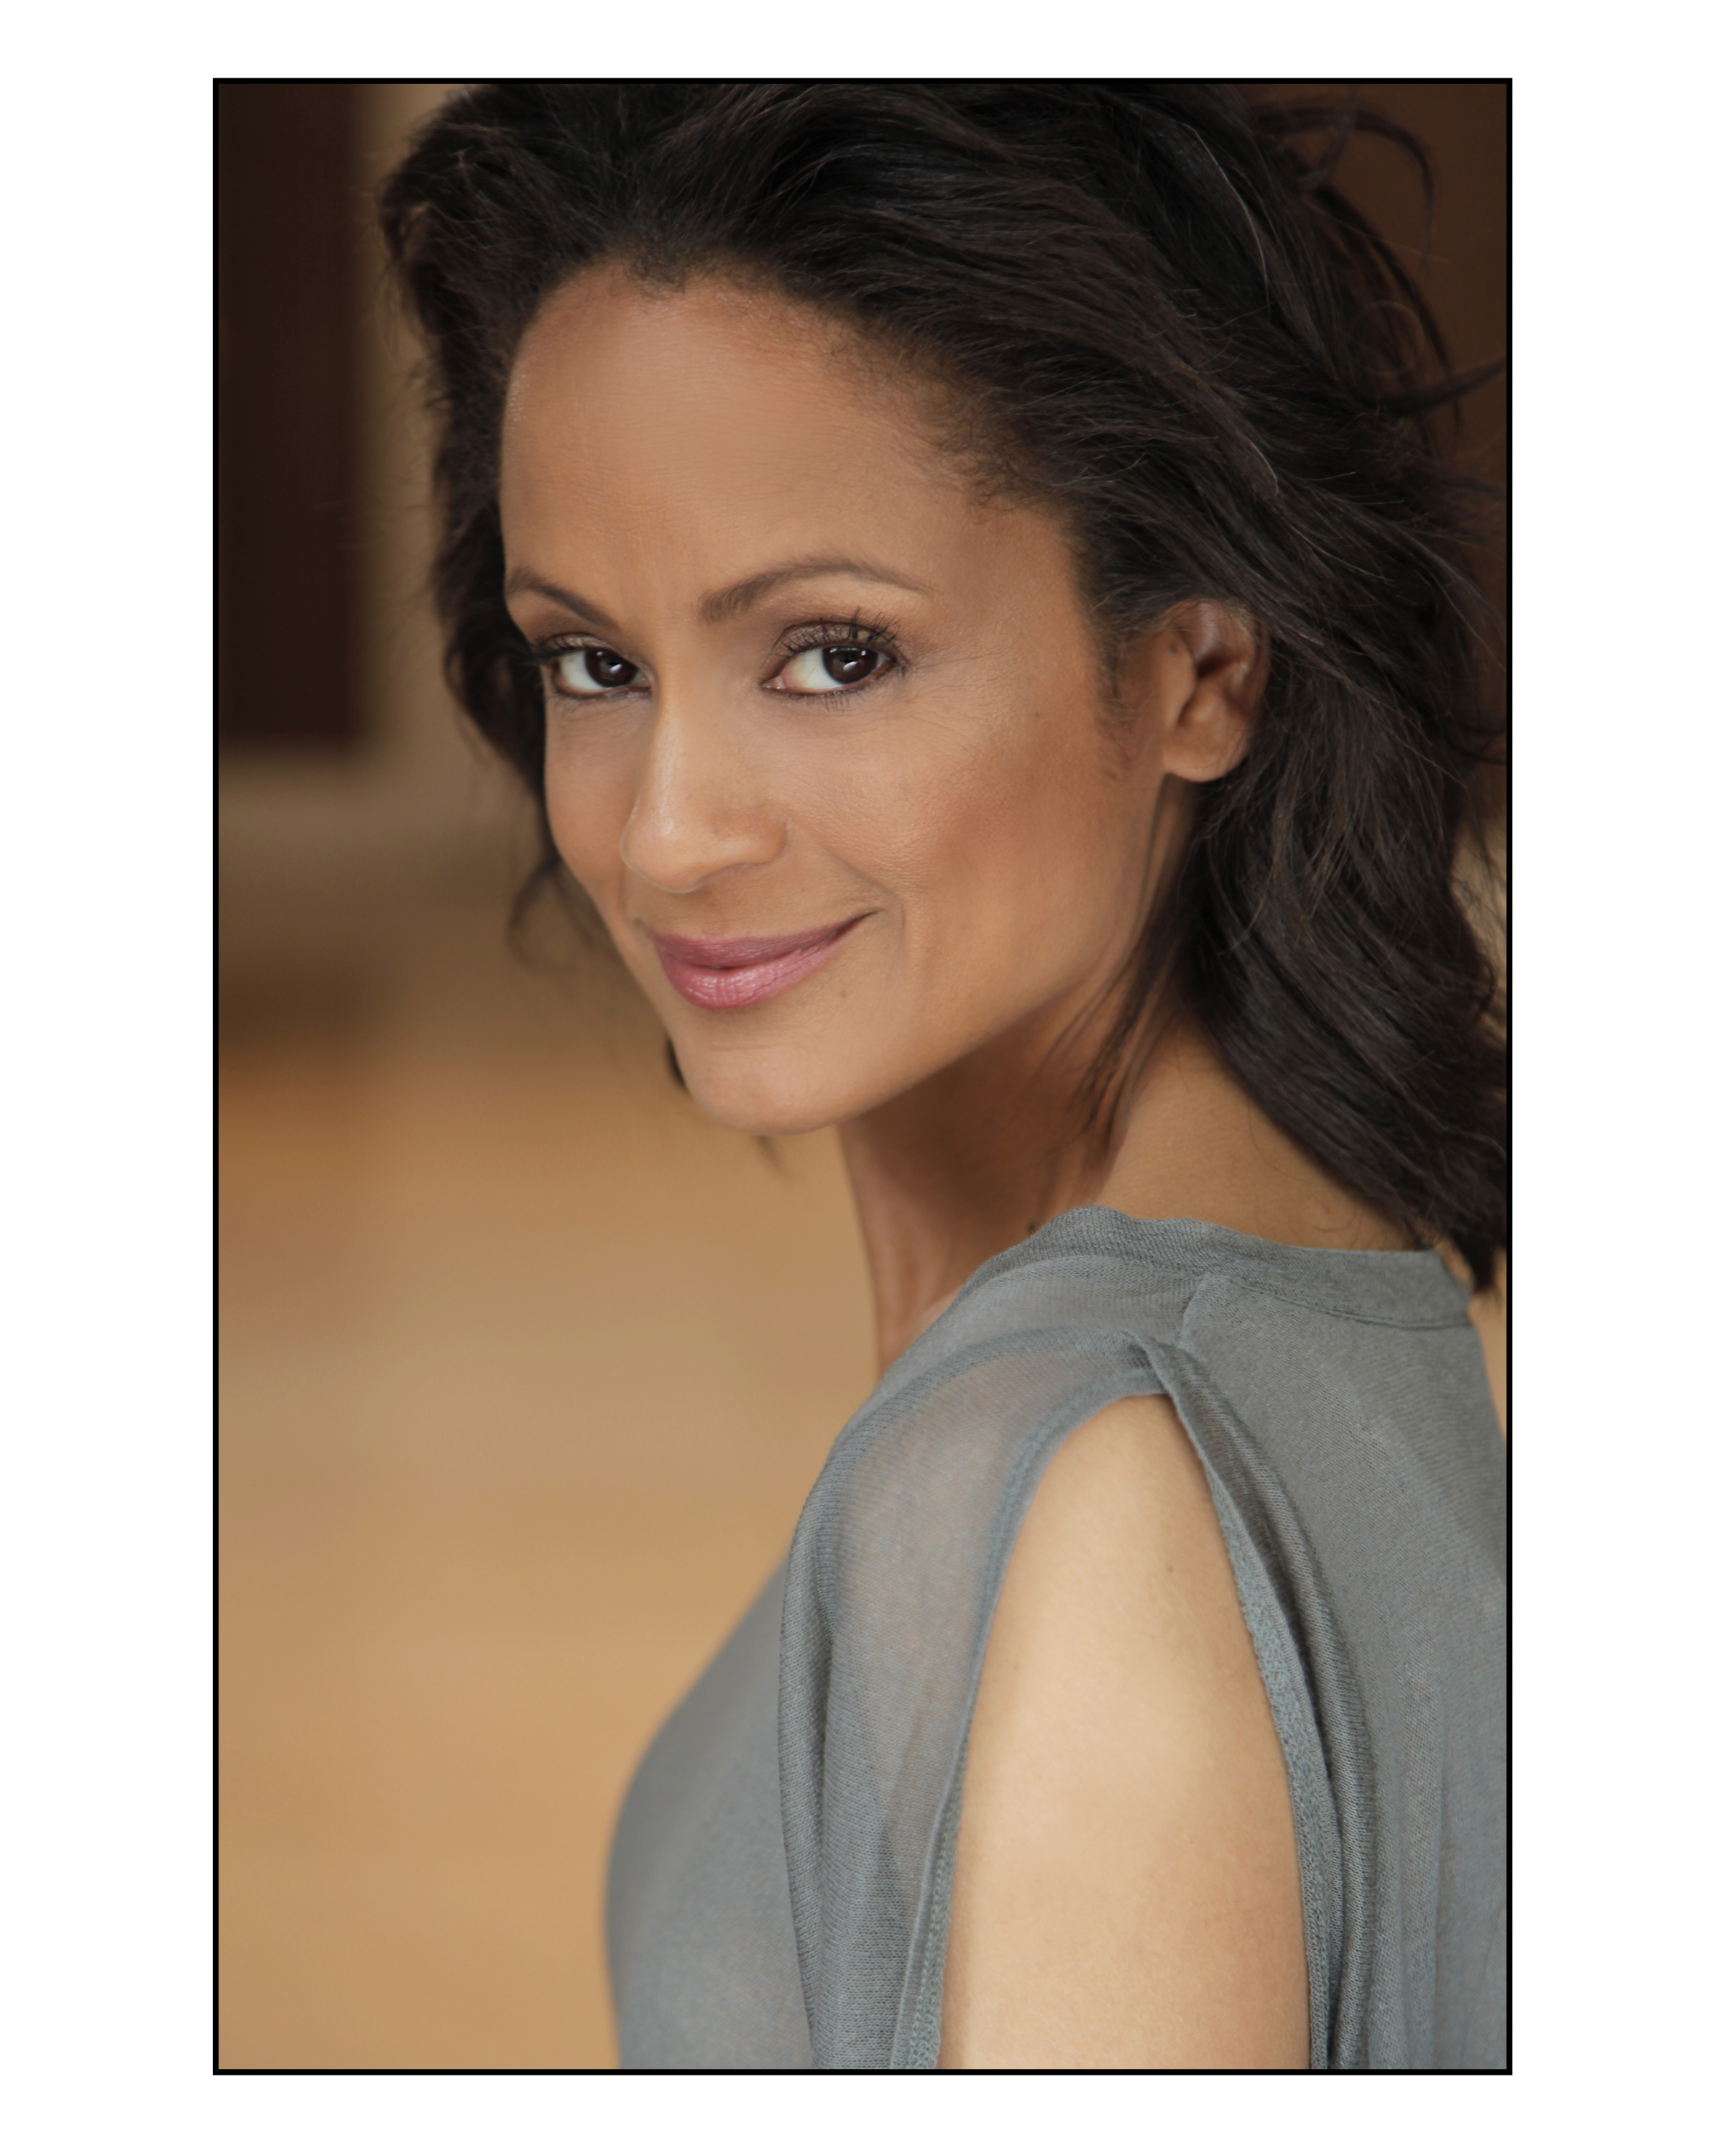 Anne-Marie Johnson nude photos 2019